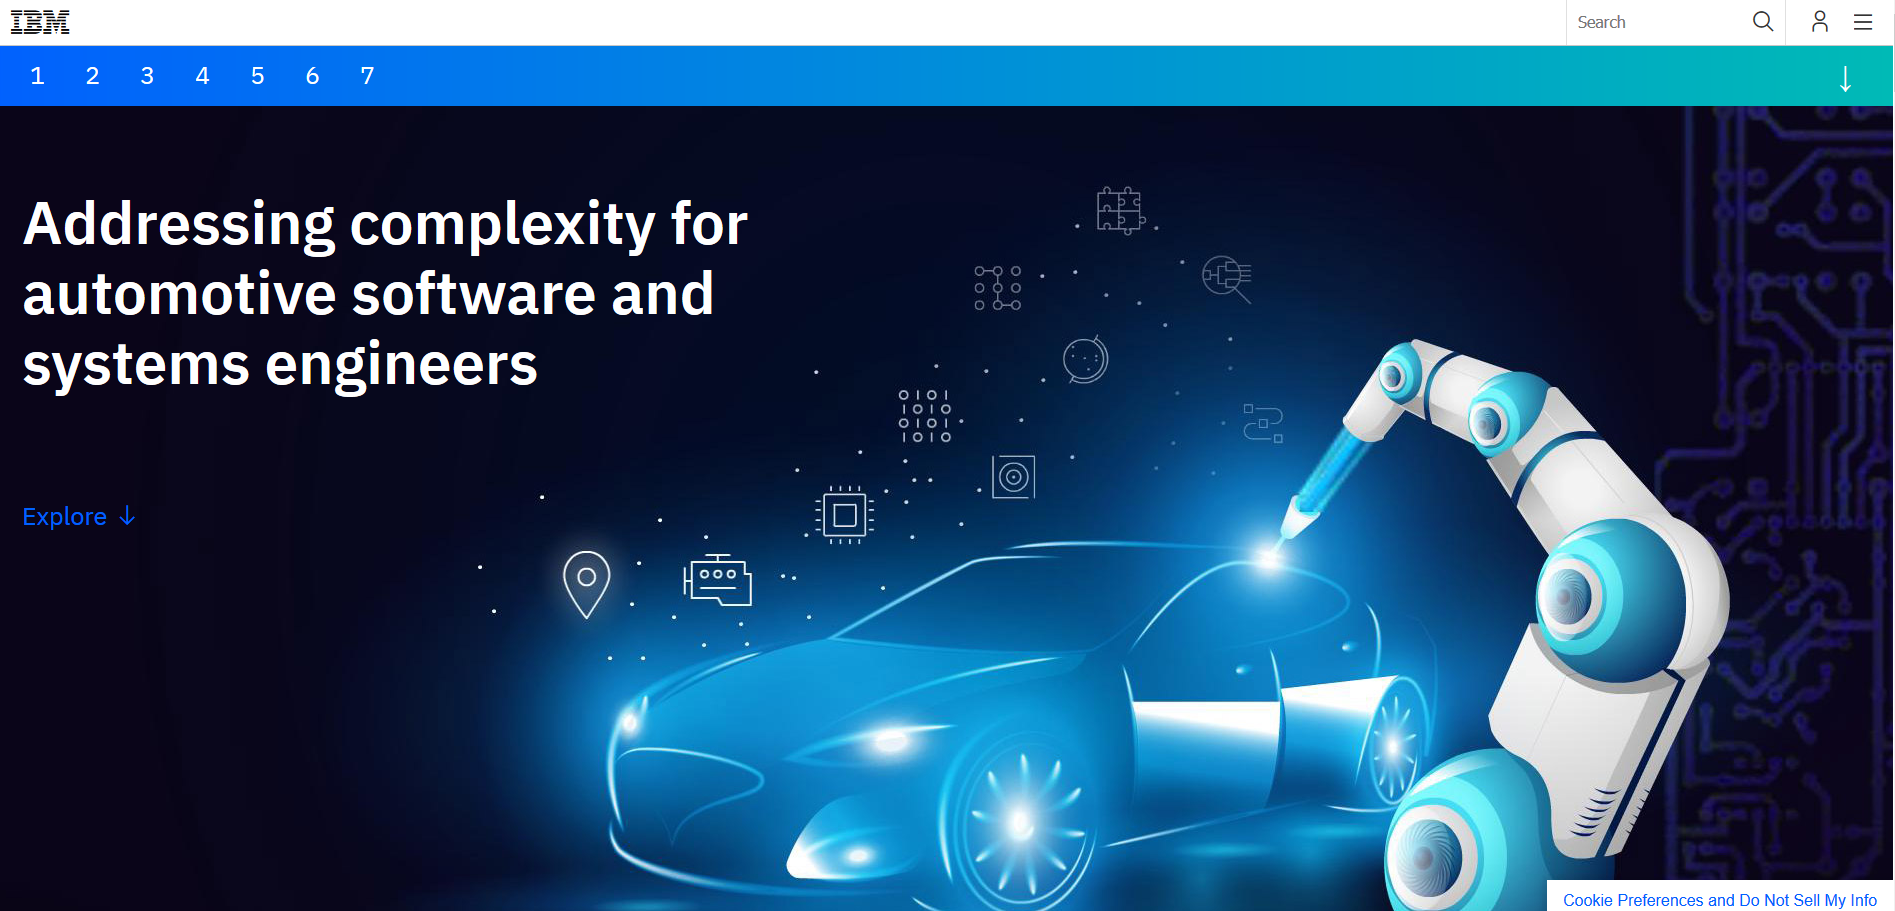 Addressing complexity for auto engineers